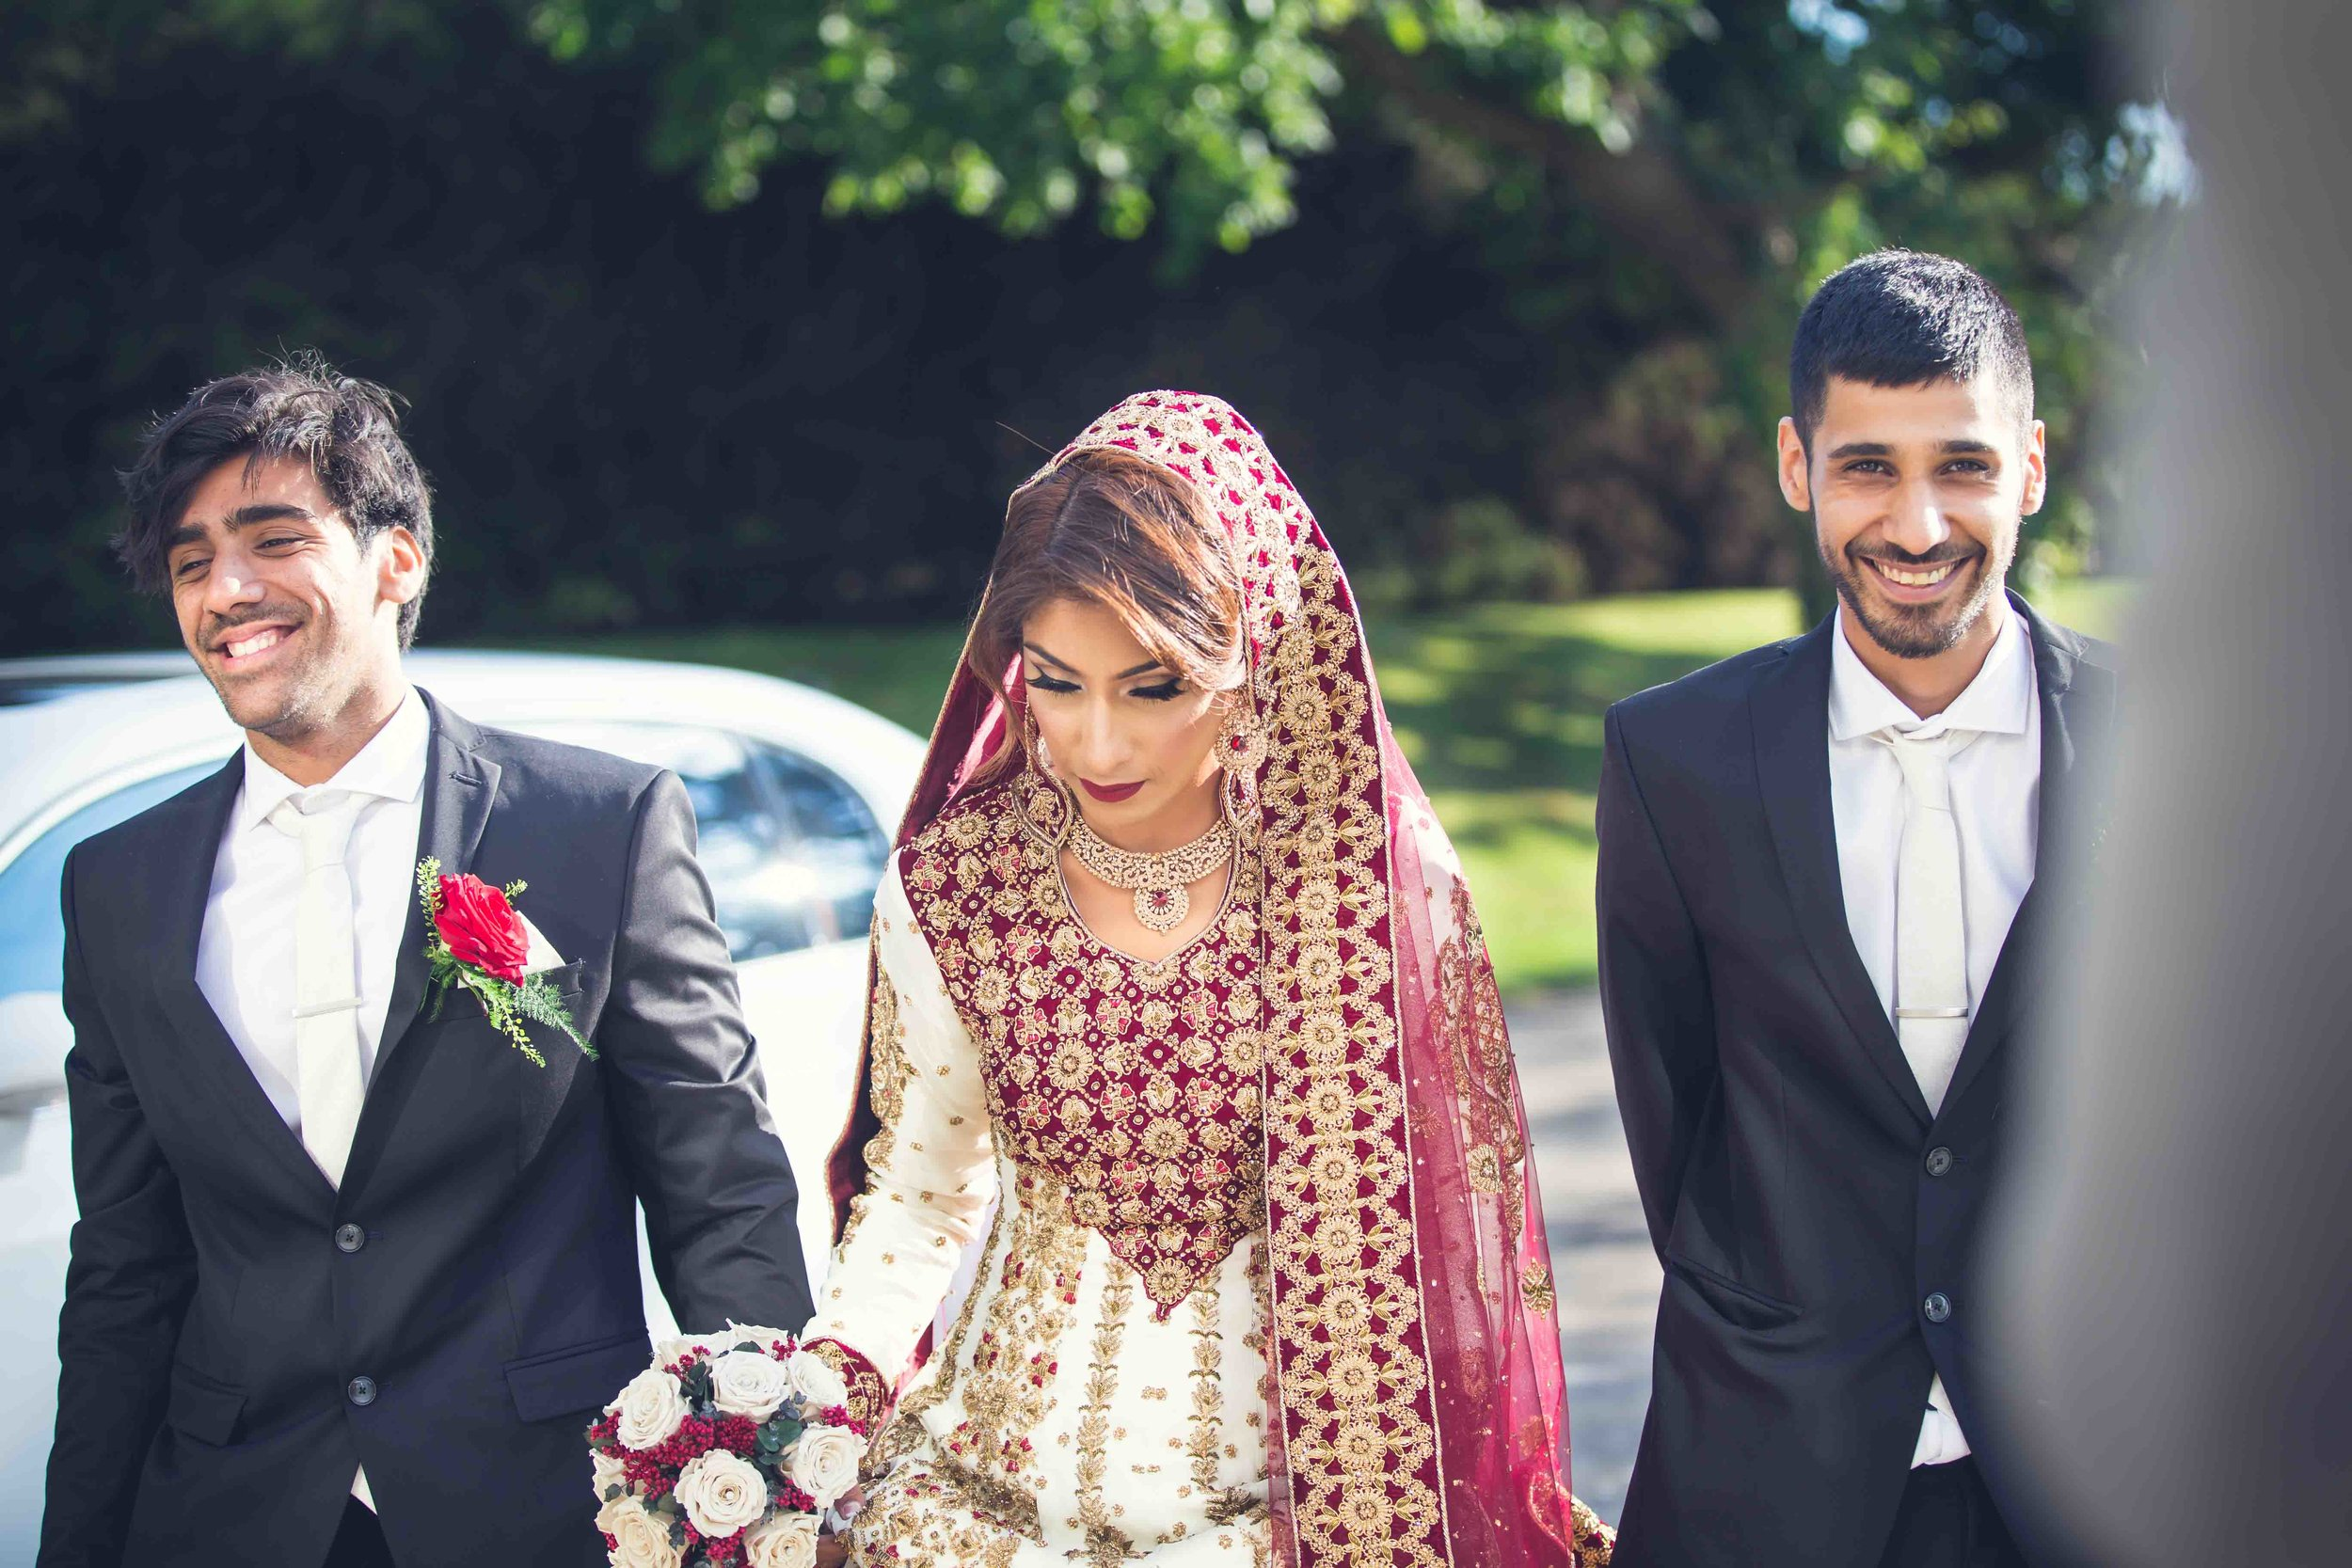 Asian Wedding Photographer Opu Sultan Photography Lyme Park Scotland Edinburgh Glasgow London Manchester Liverpool Birmingham Wedding Photos prewed shoot Azman & Saira Blog-61.jpg